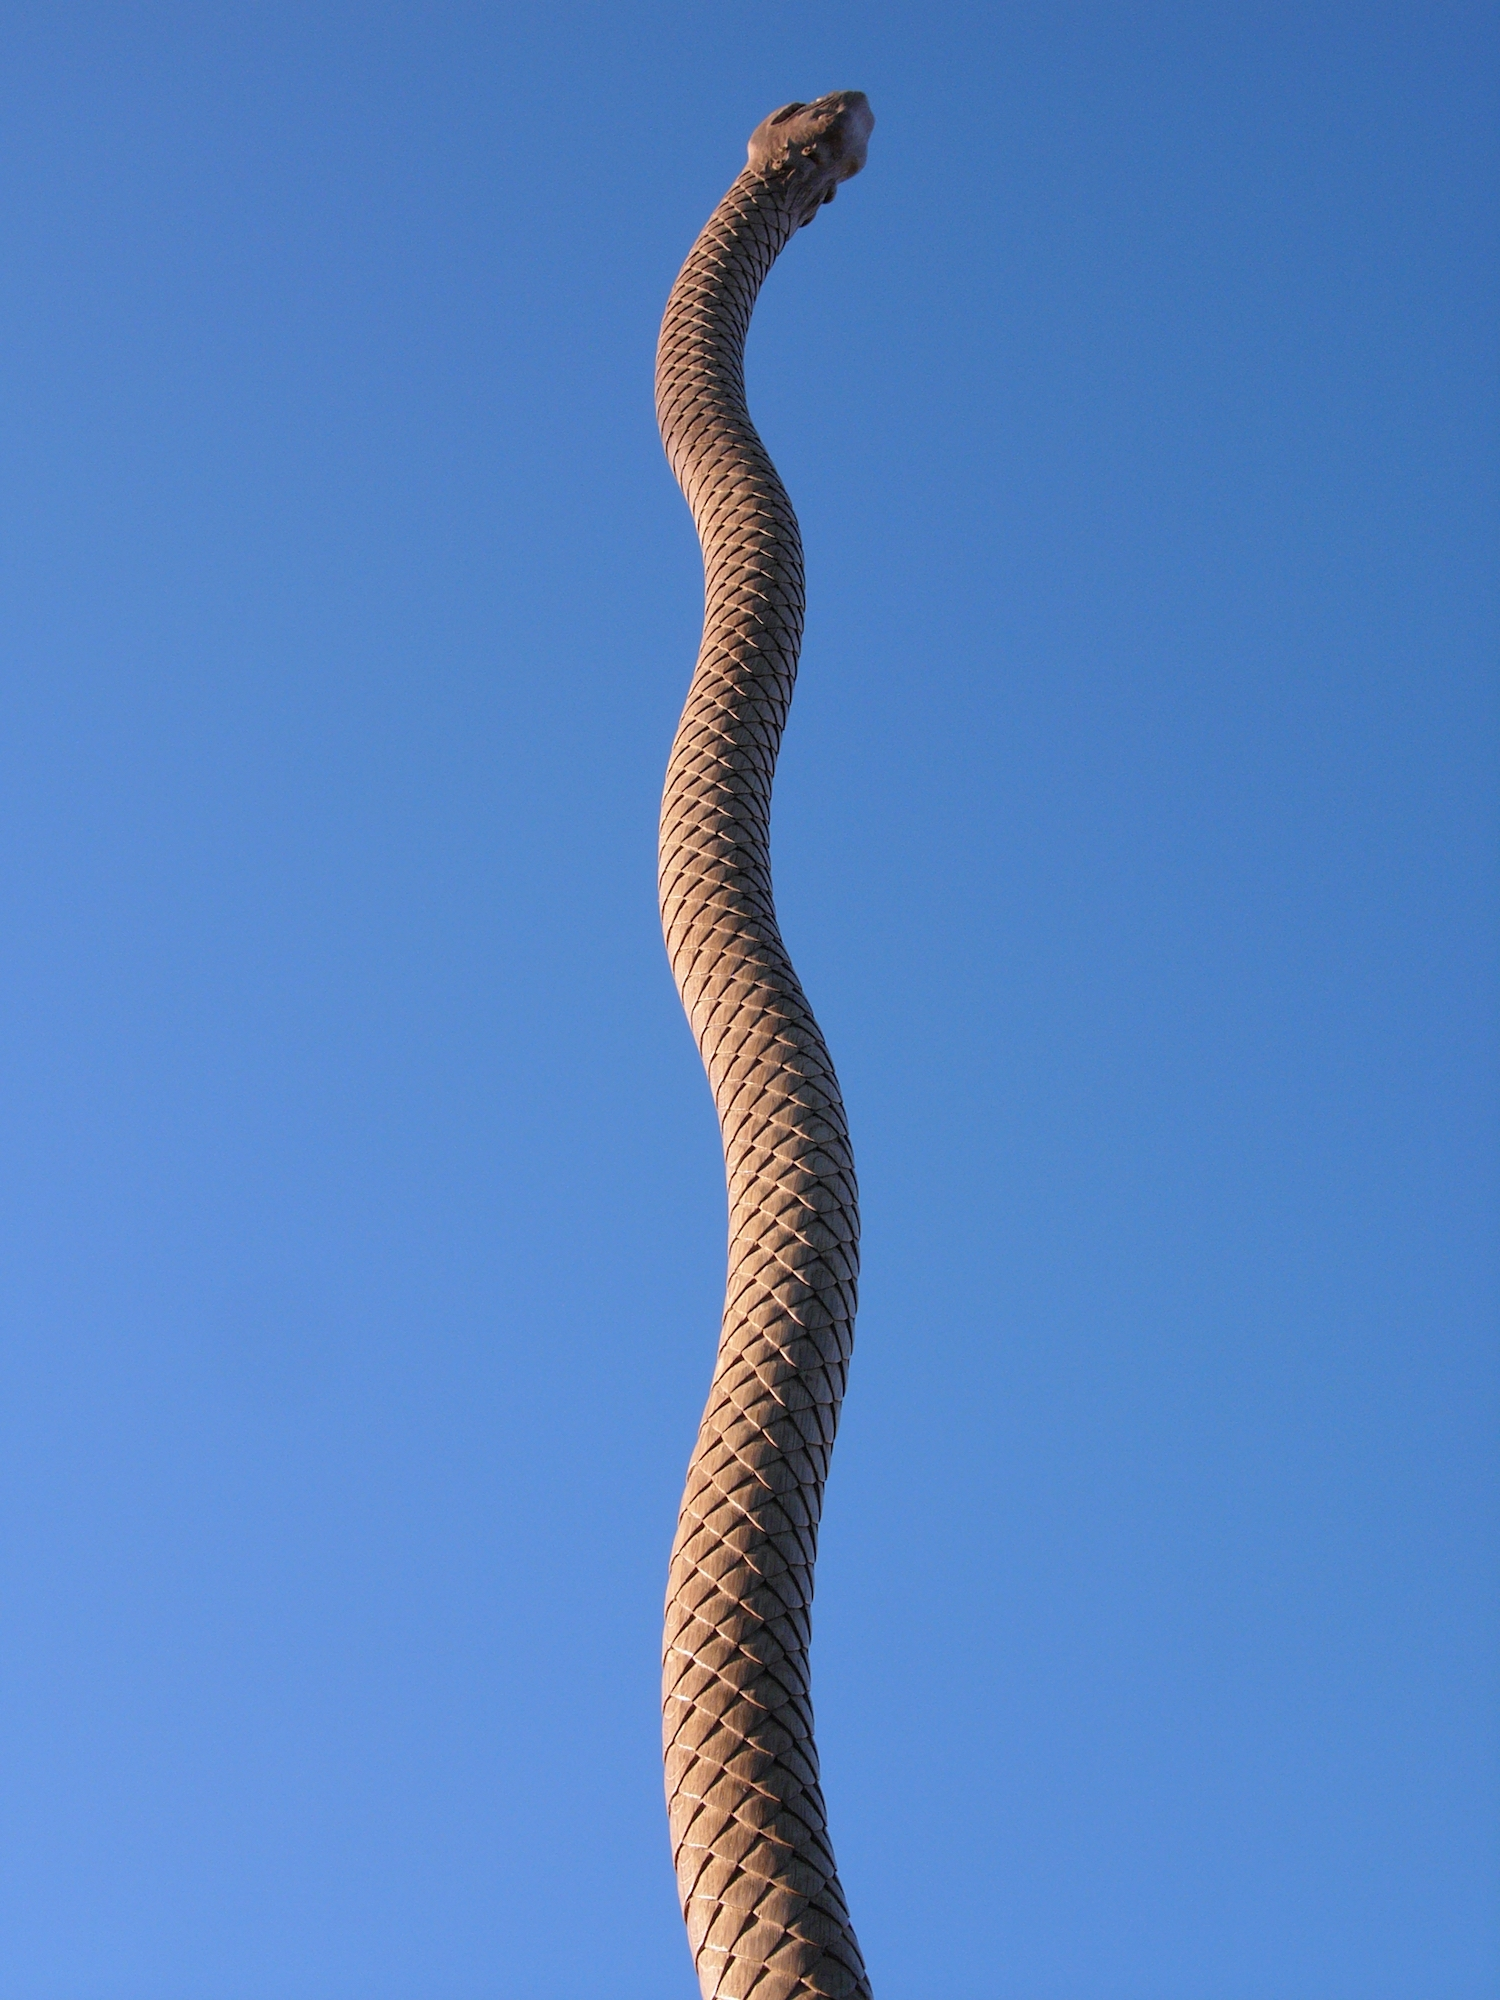 Chatsworth serpent